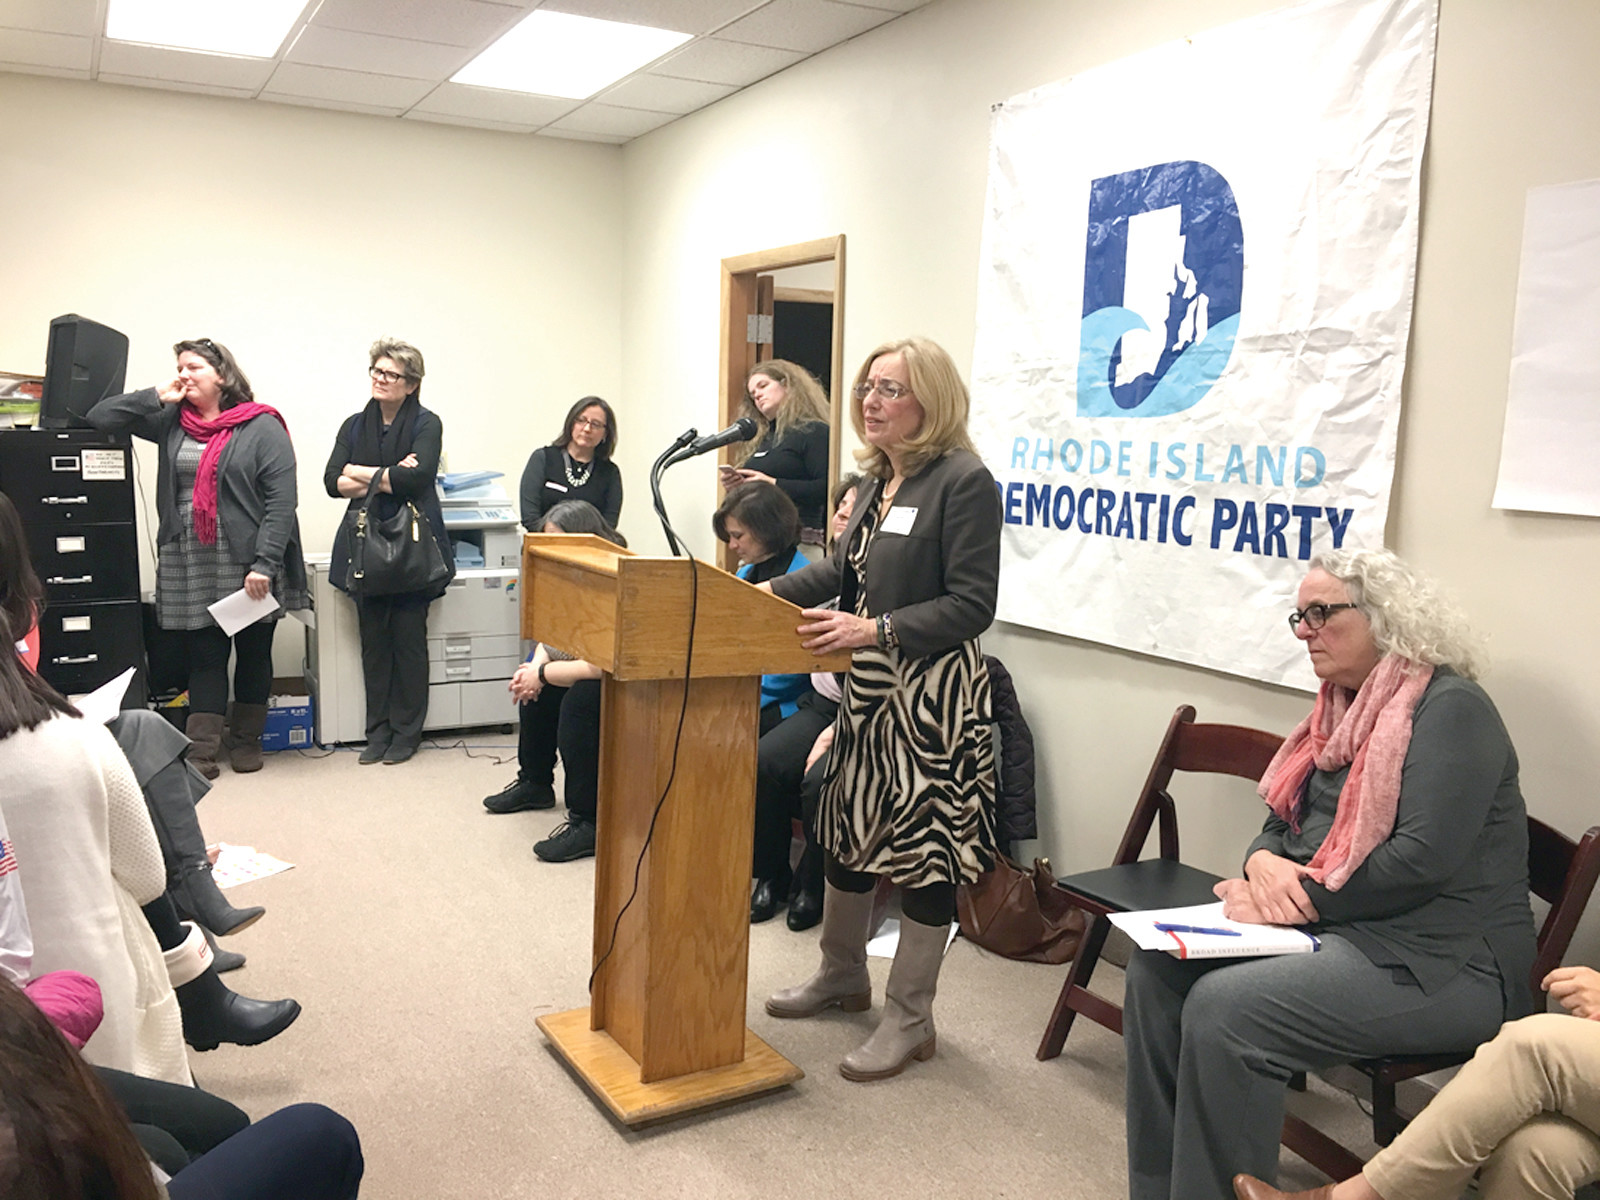 WHAT NEXT?  Representatives Lauren Carson (speaking)  and other elected officials joined forces to mobilize Democratic women to take action in the Trump era.